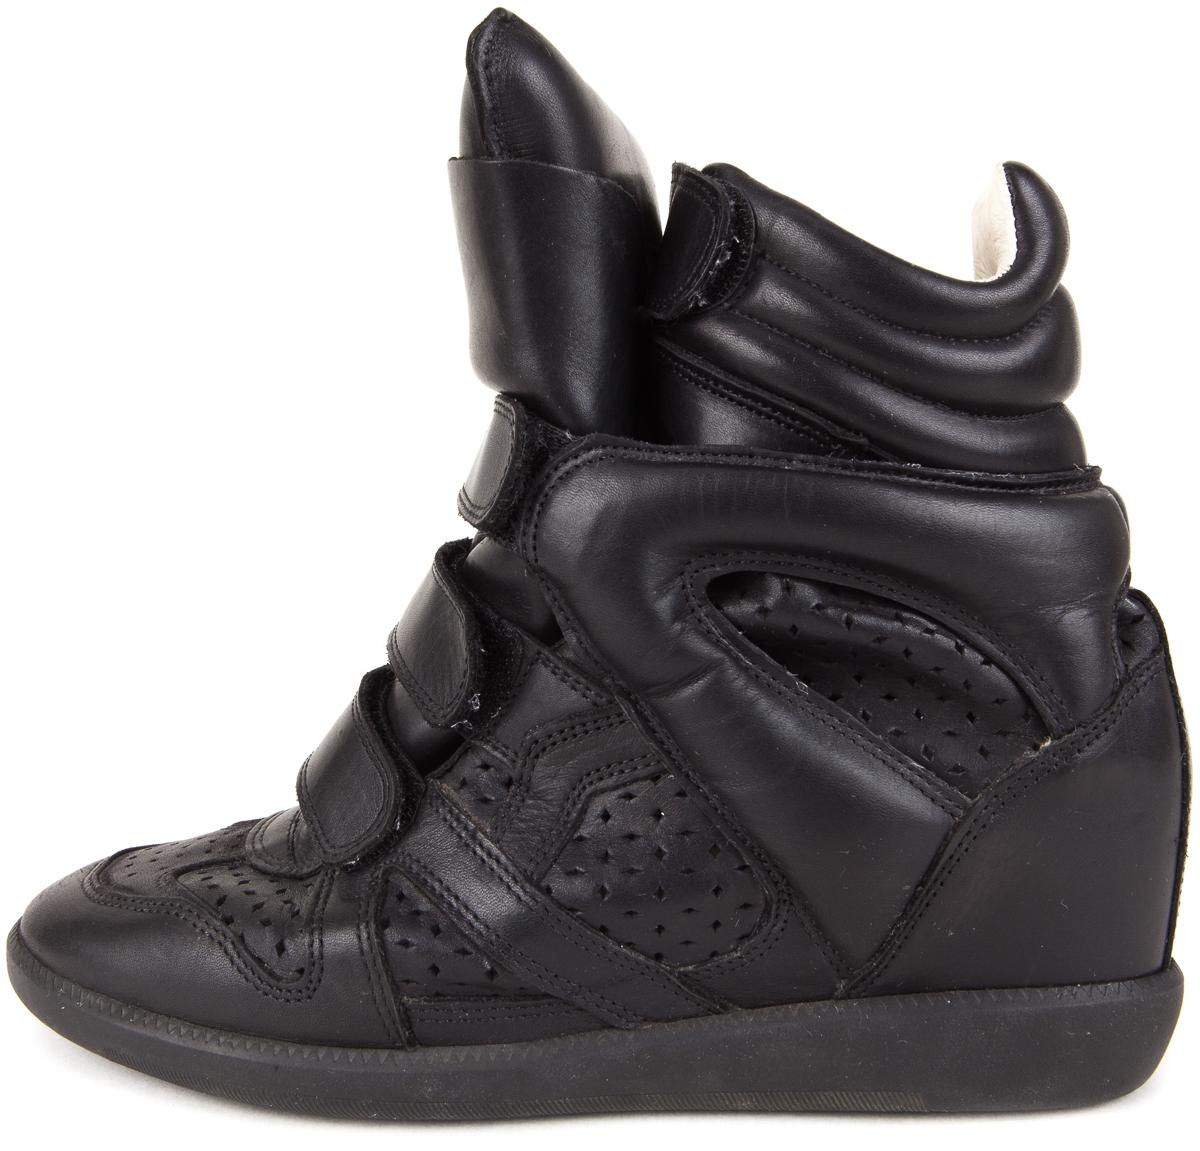 "Isabel Marant Black Leather ""Bekett"" Hidden High Top Velcro Sneakers Wedges Size US 10 Wide (C, D)"